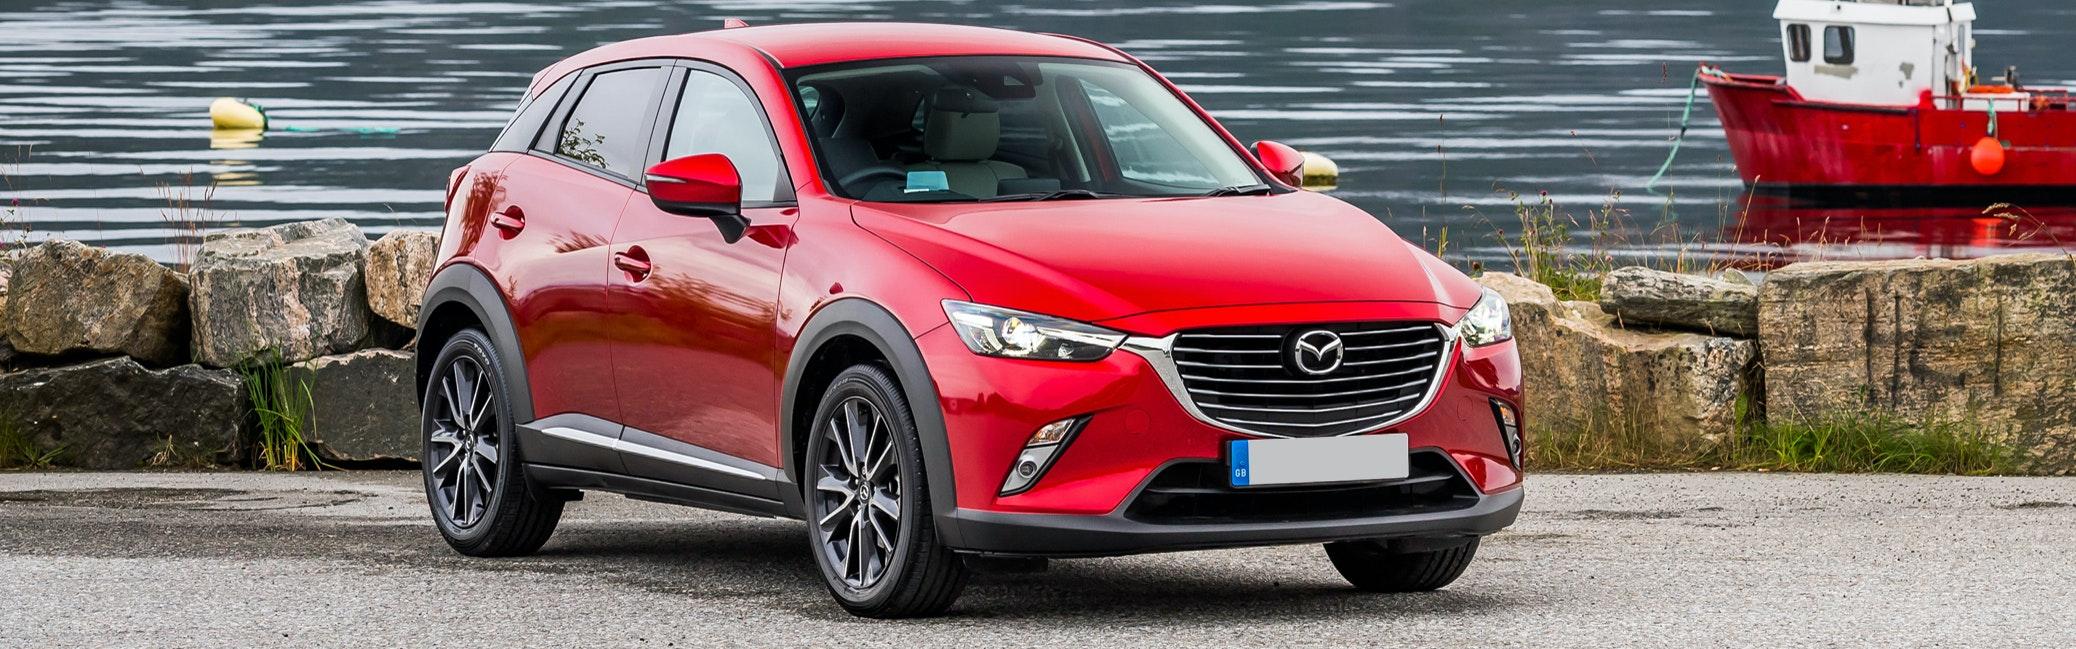 Red Mazda CX-3 parked, viewed from the front